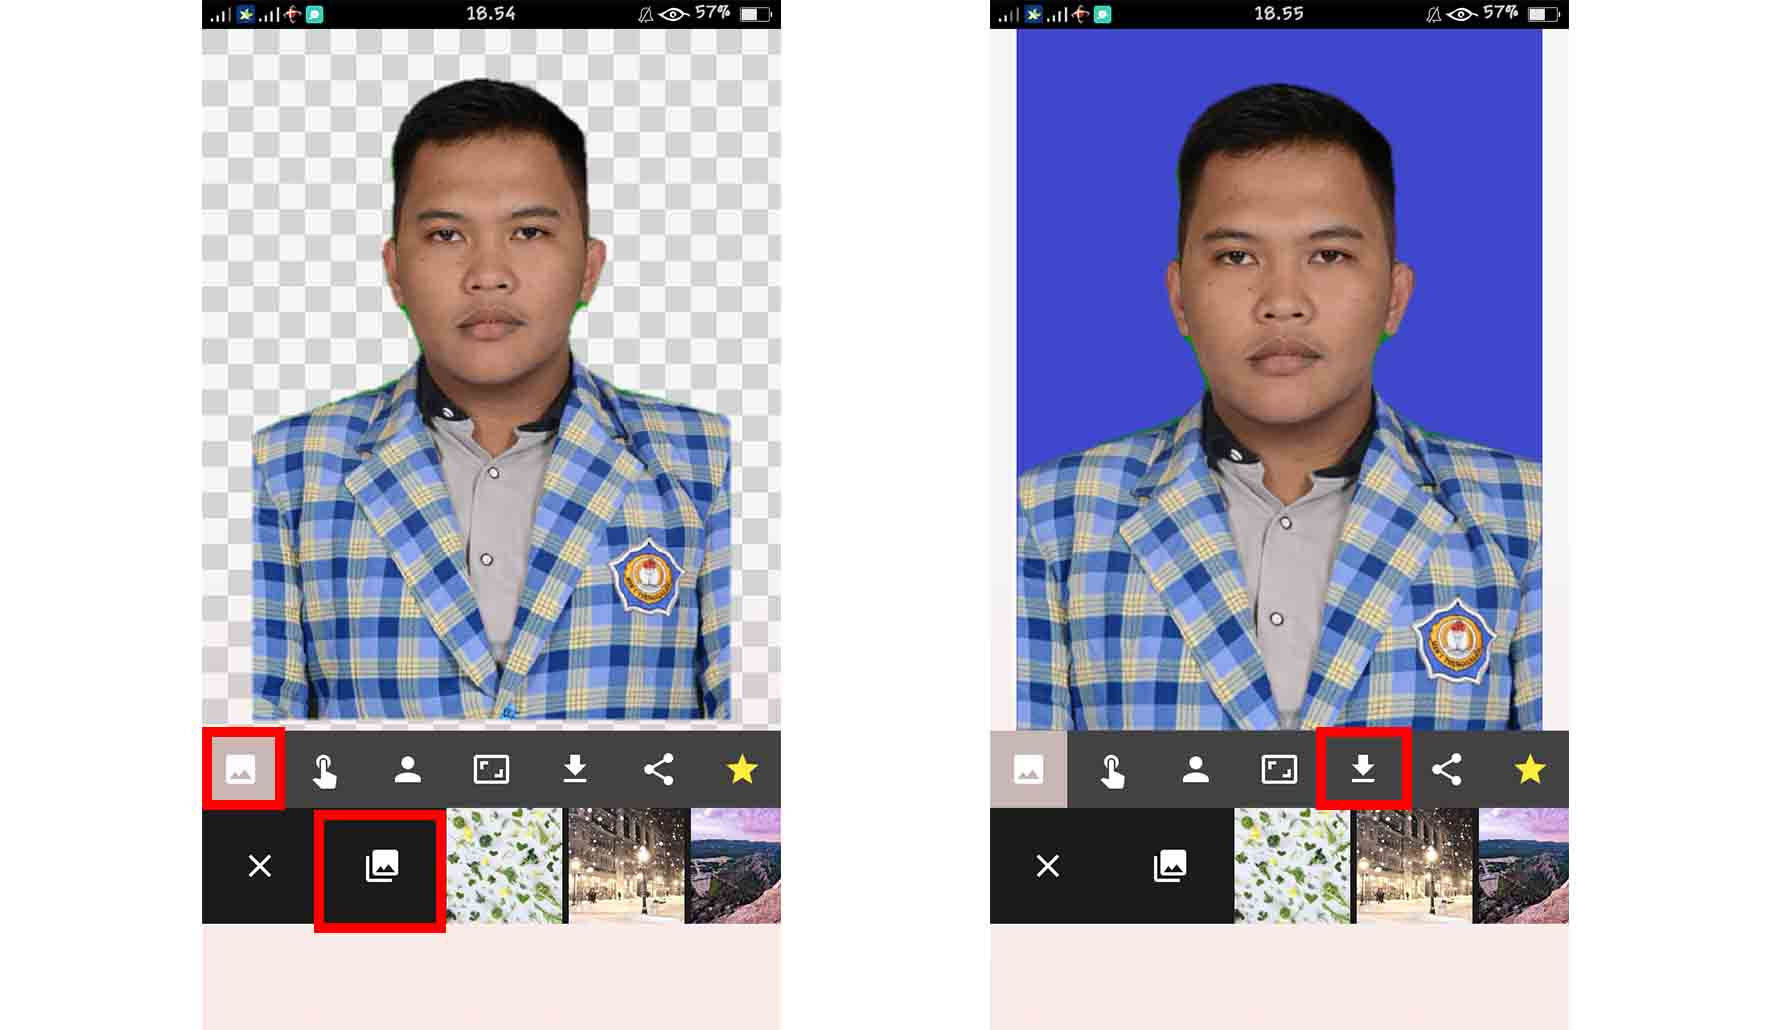 dengan Automatic Background Changer